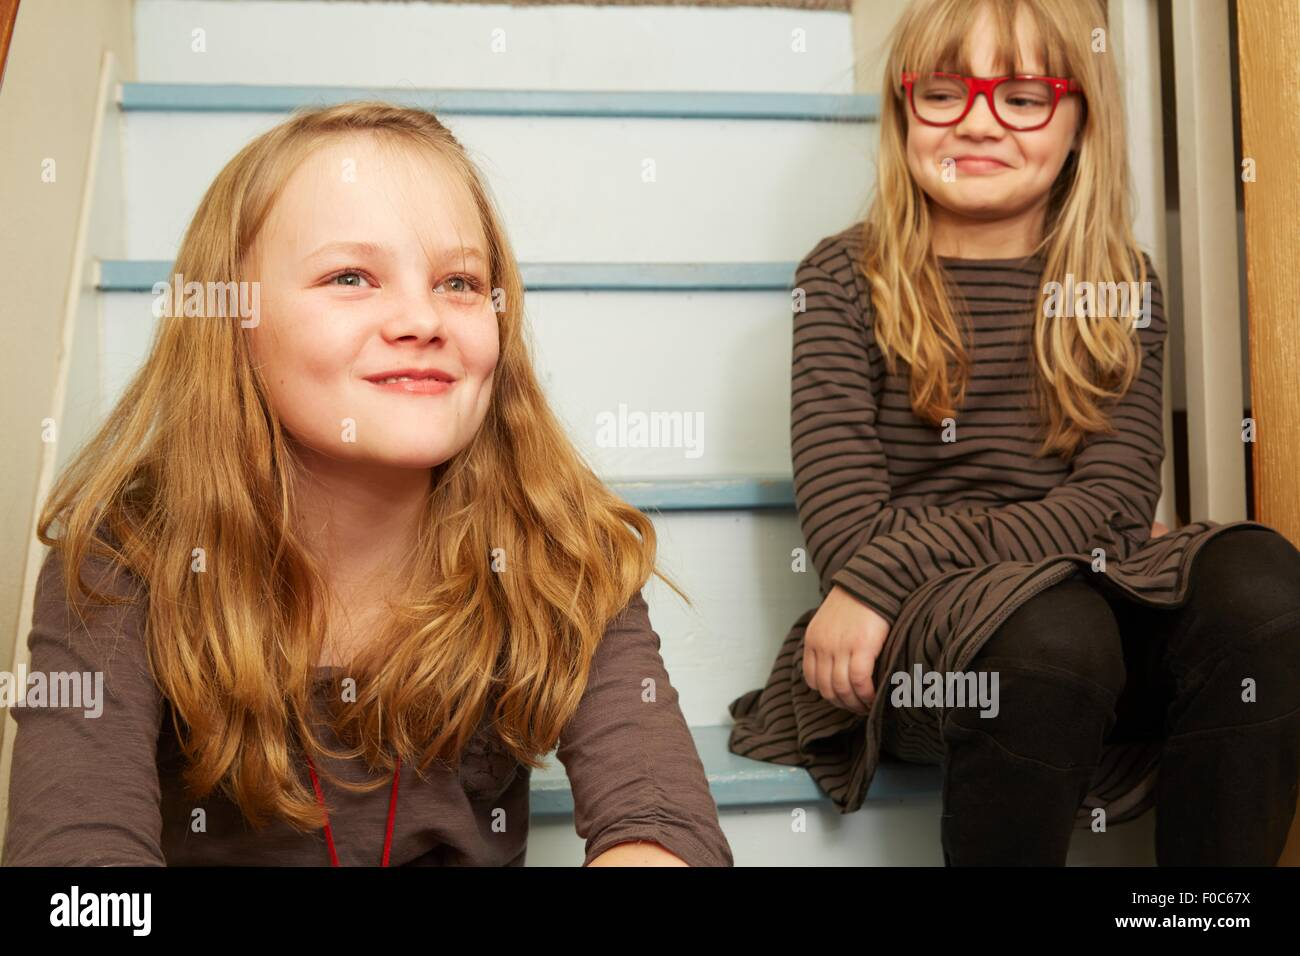 Two sisters sitting on stairs, smiling - Stock Image